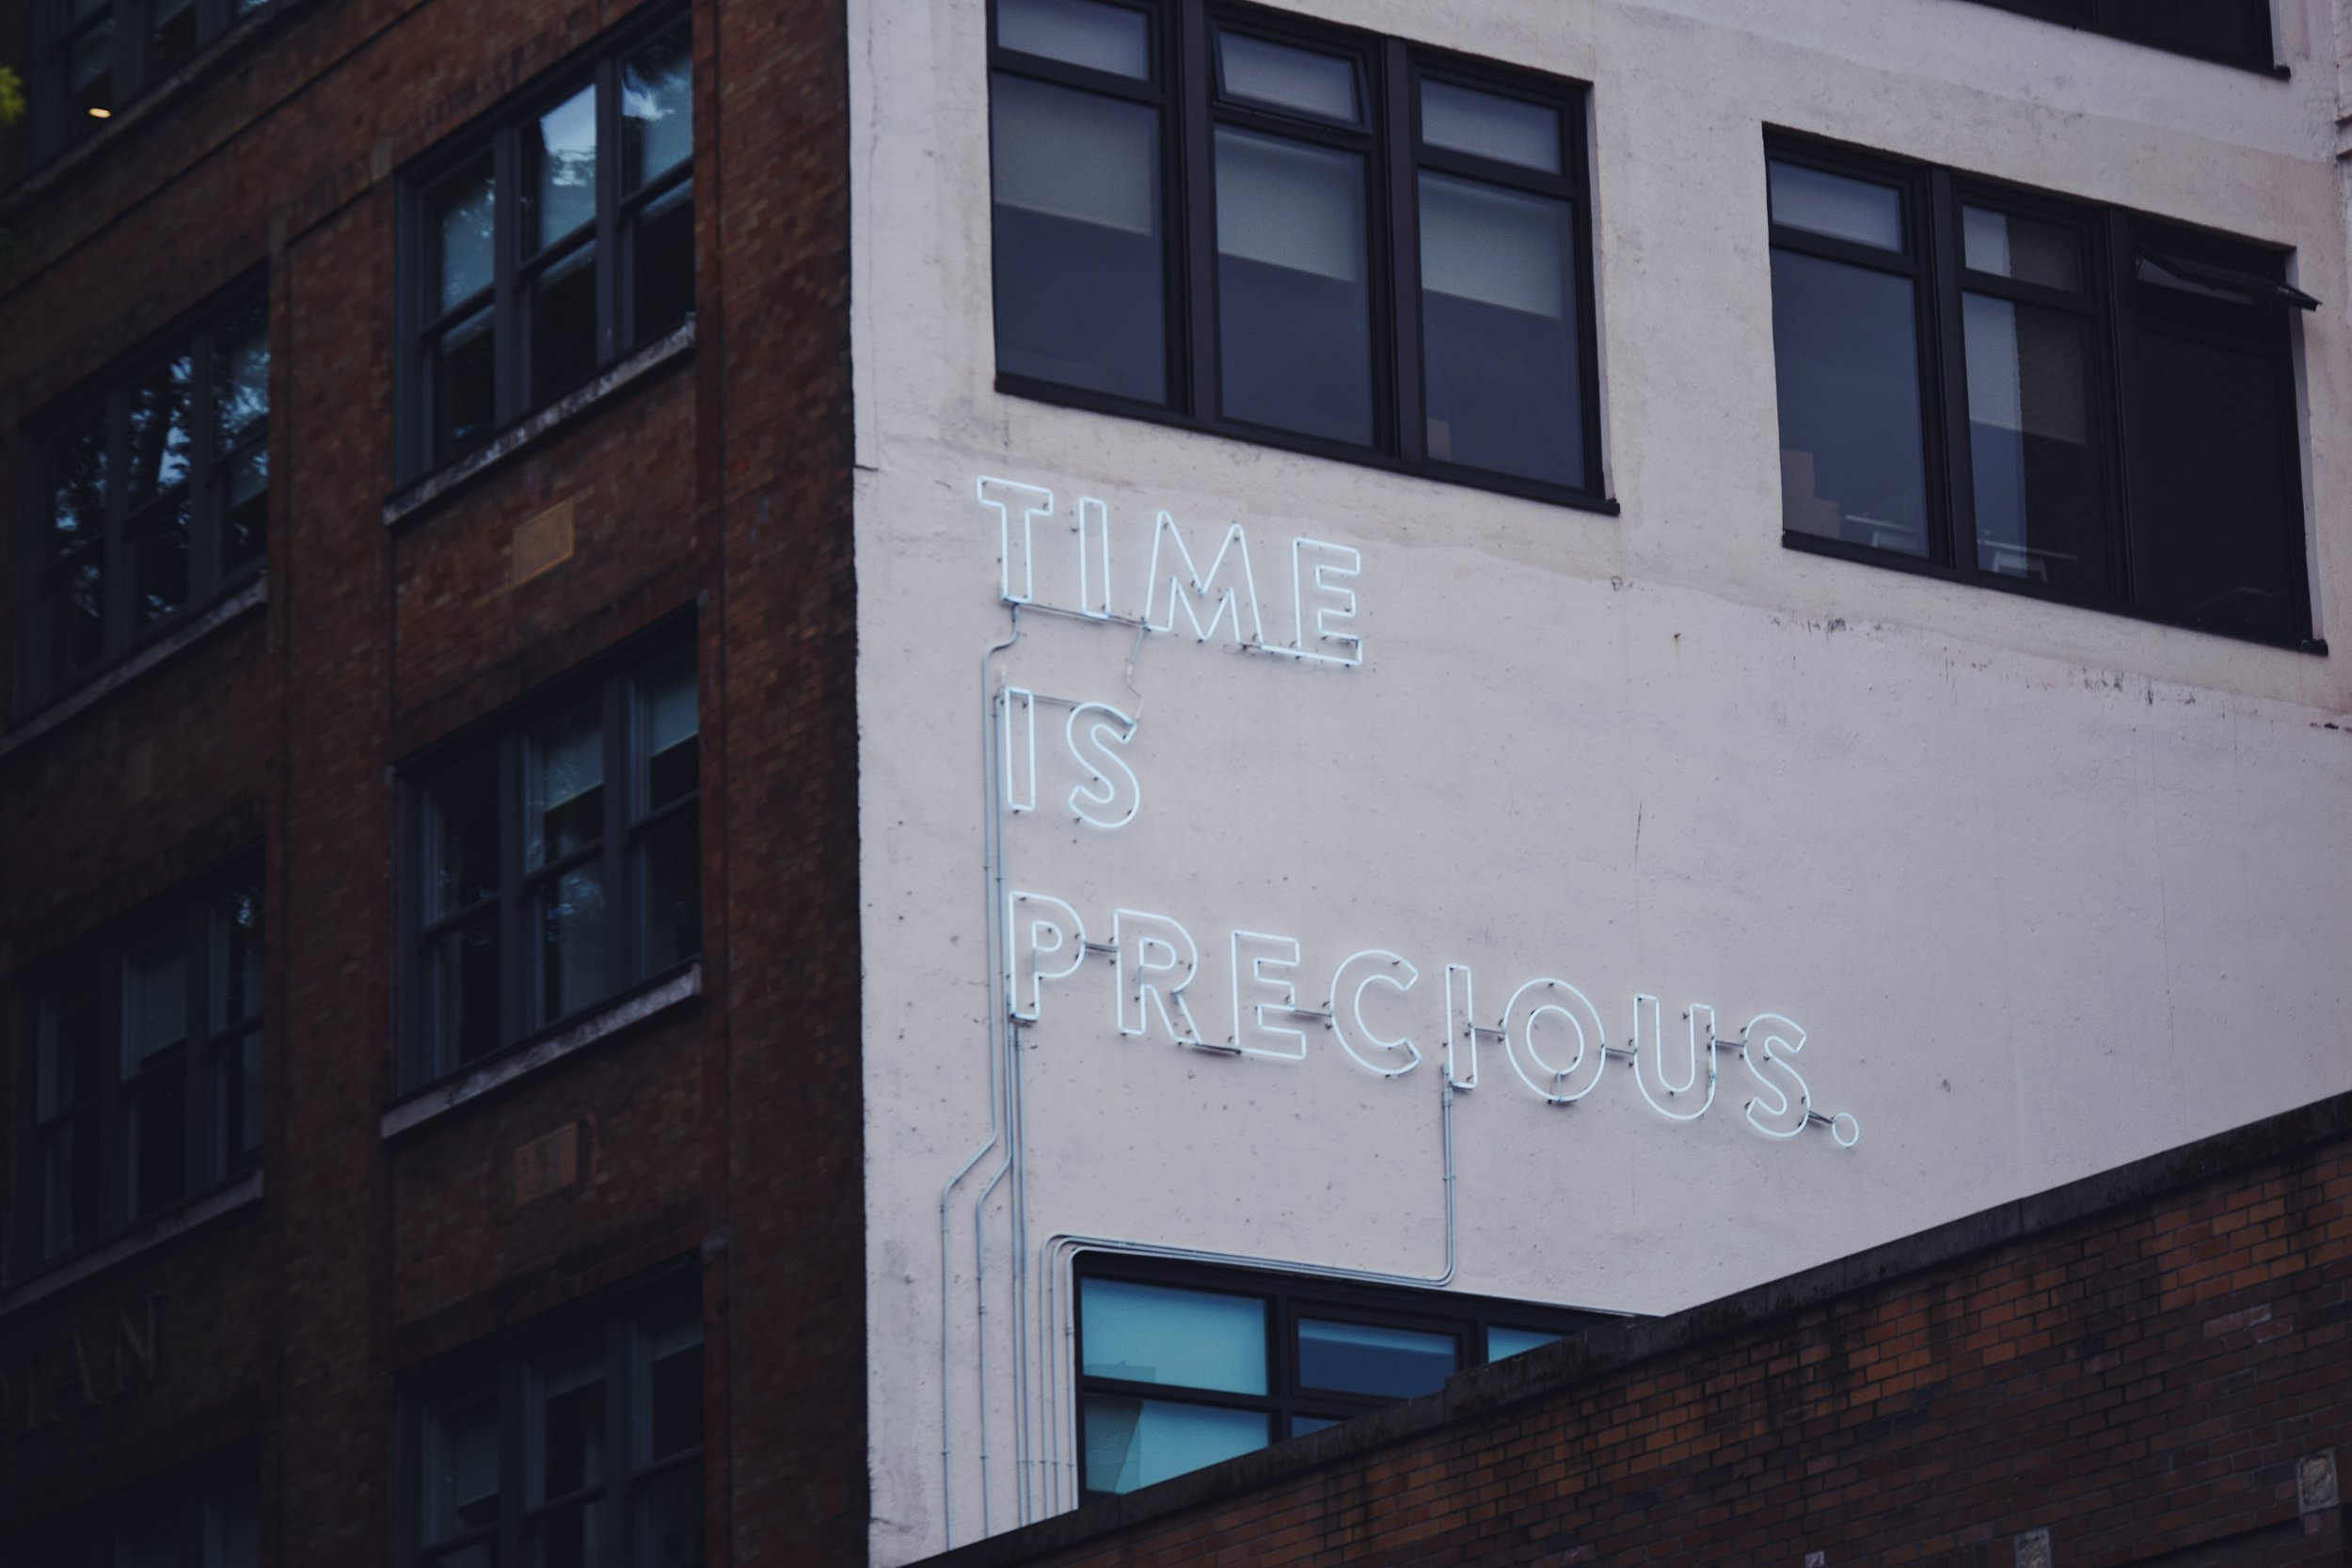 Your time, and the time of others is precious.